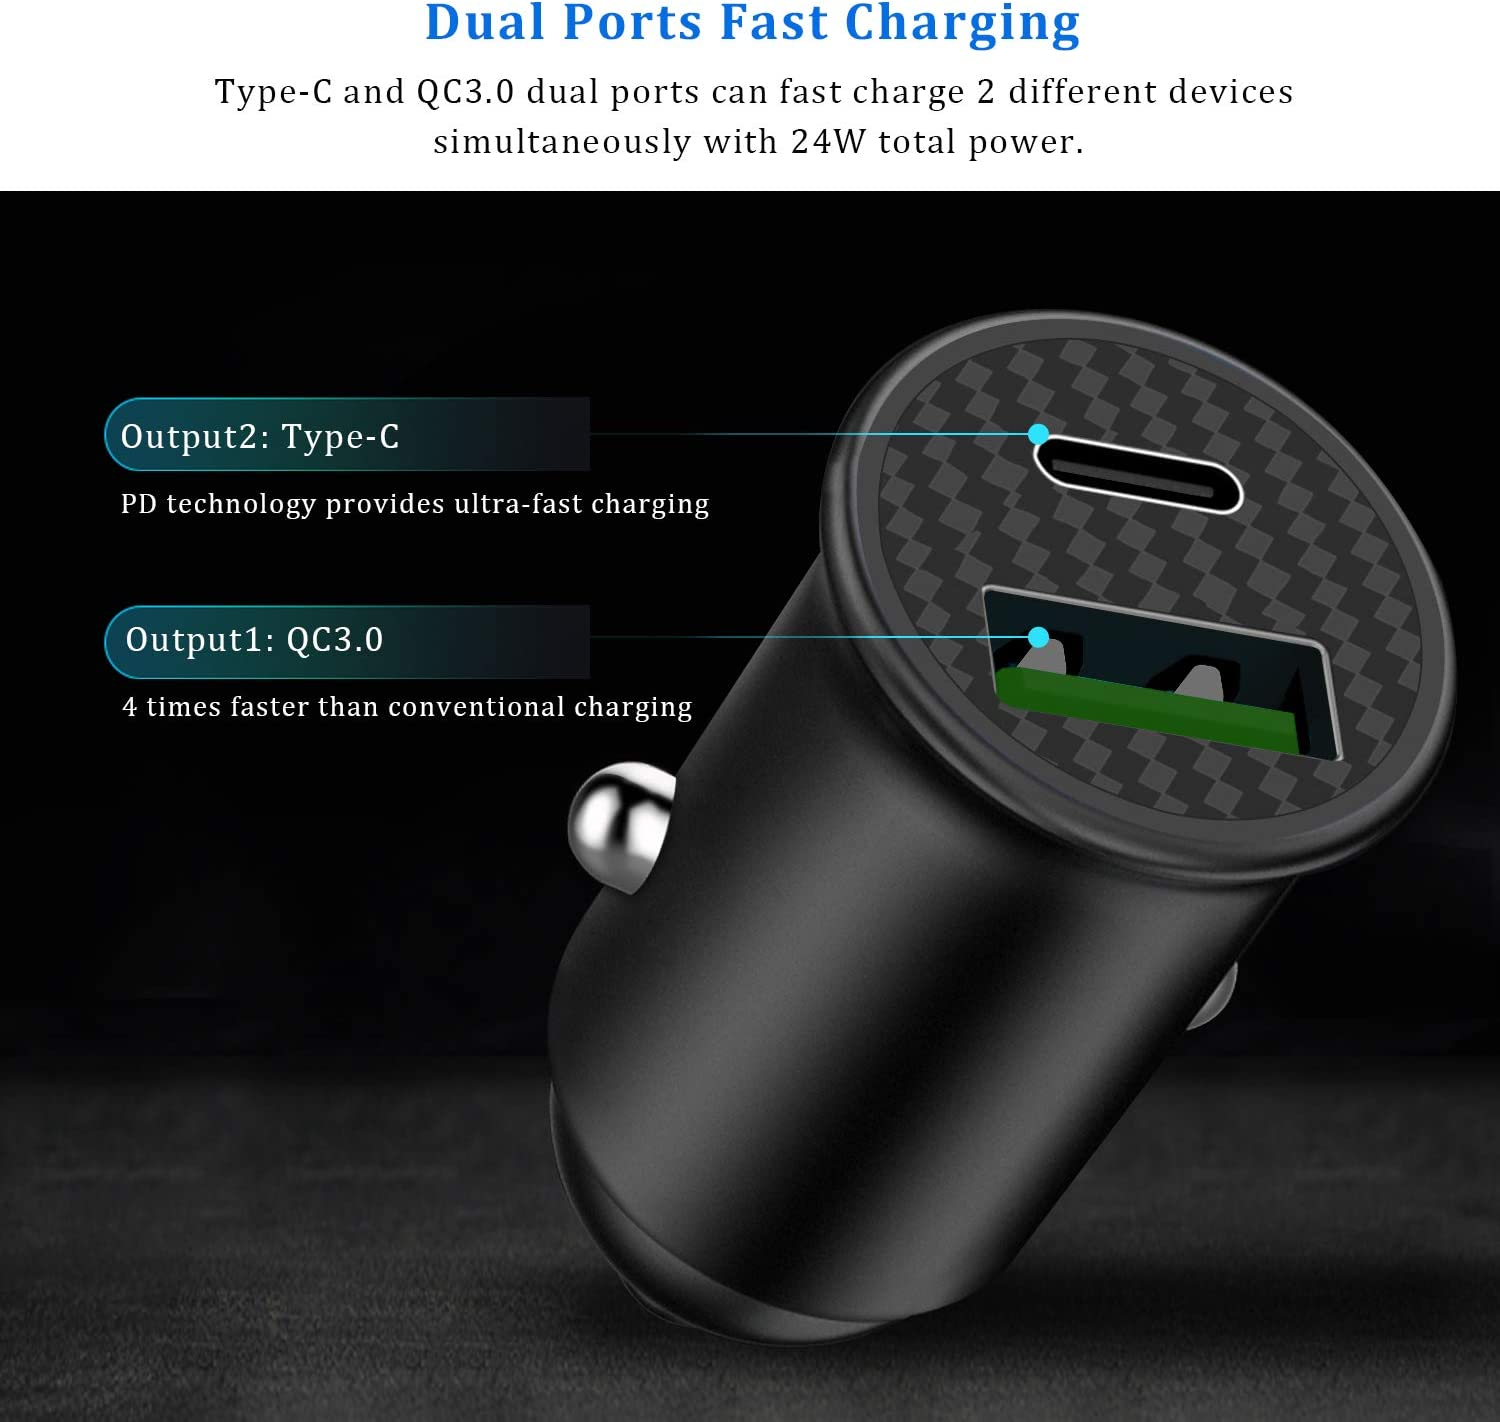 Galaxy S10//S9//S8 LG MacBook Pro//Air iPad Pro HTC etc PD Car Charger,OIIEE Mini Type-C Car Charger Adapter Quick Charge 3.0 24W Dual Ports USB-C for iPhone 11//11 Pro//11 Pro Max//Xs//Xs max//Xr//X//8